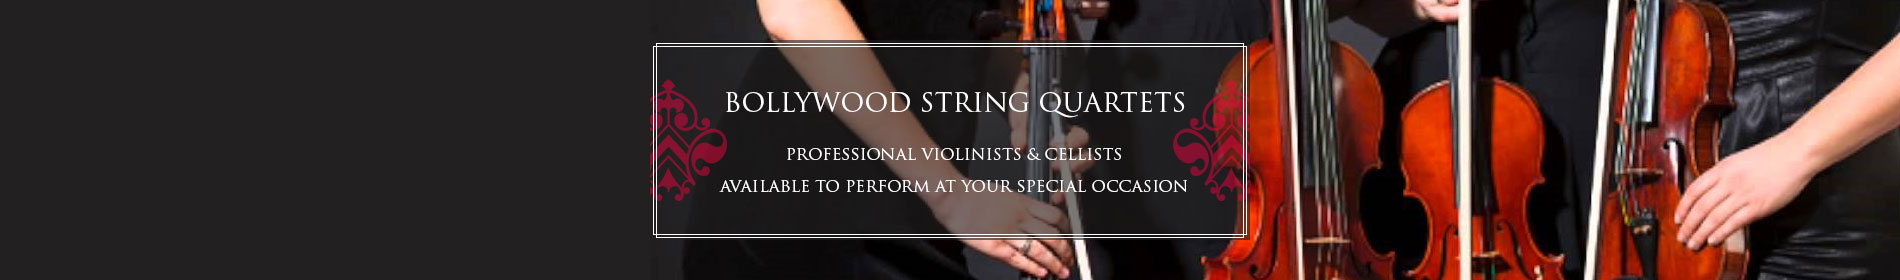 Bollywood String Quartets